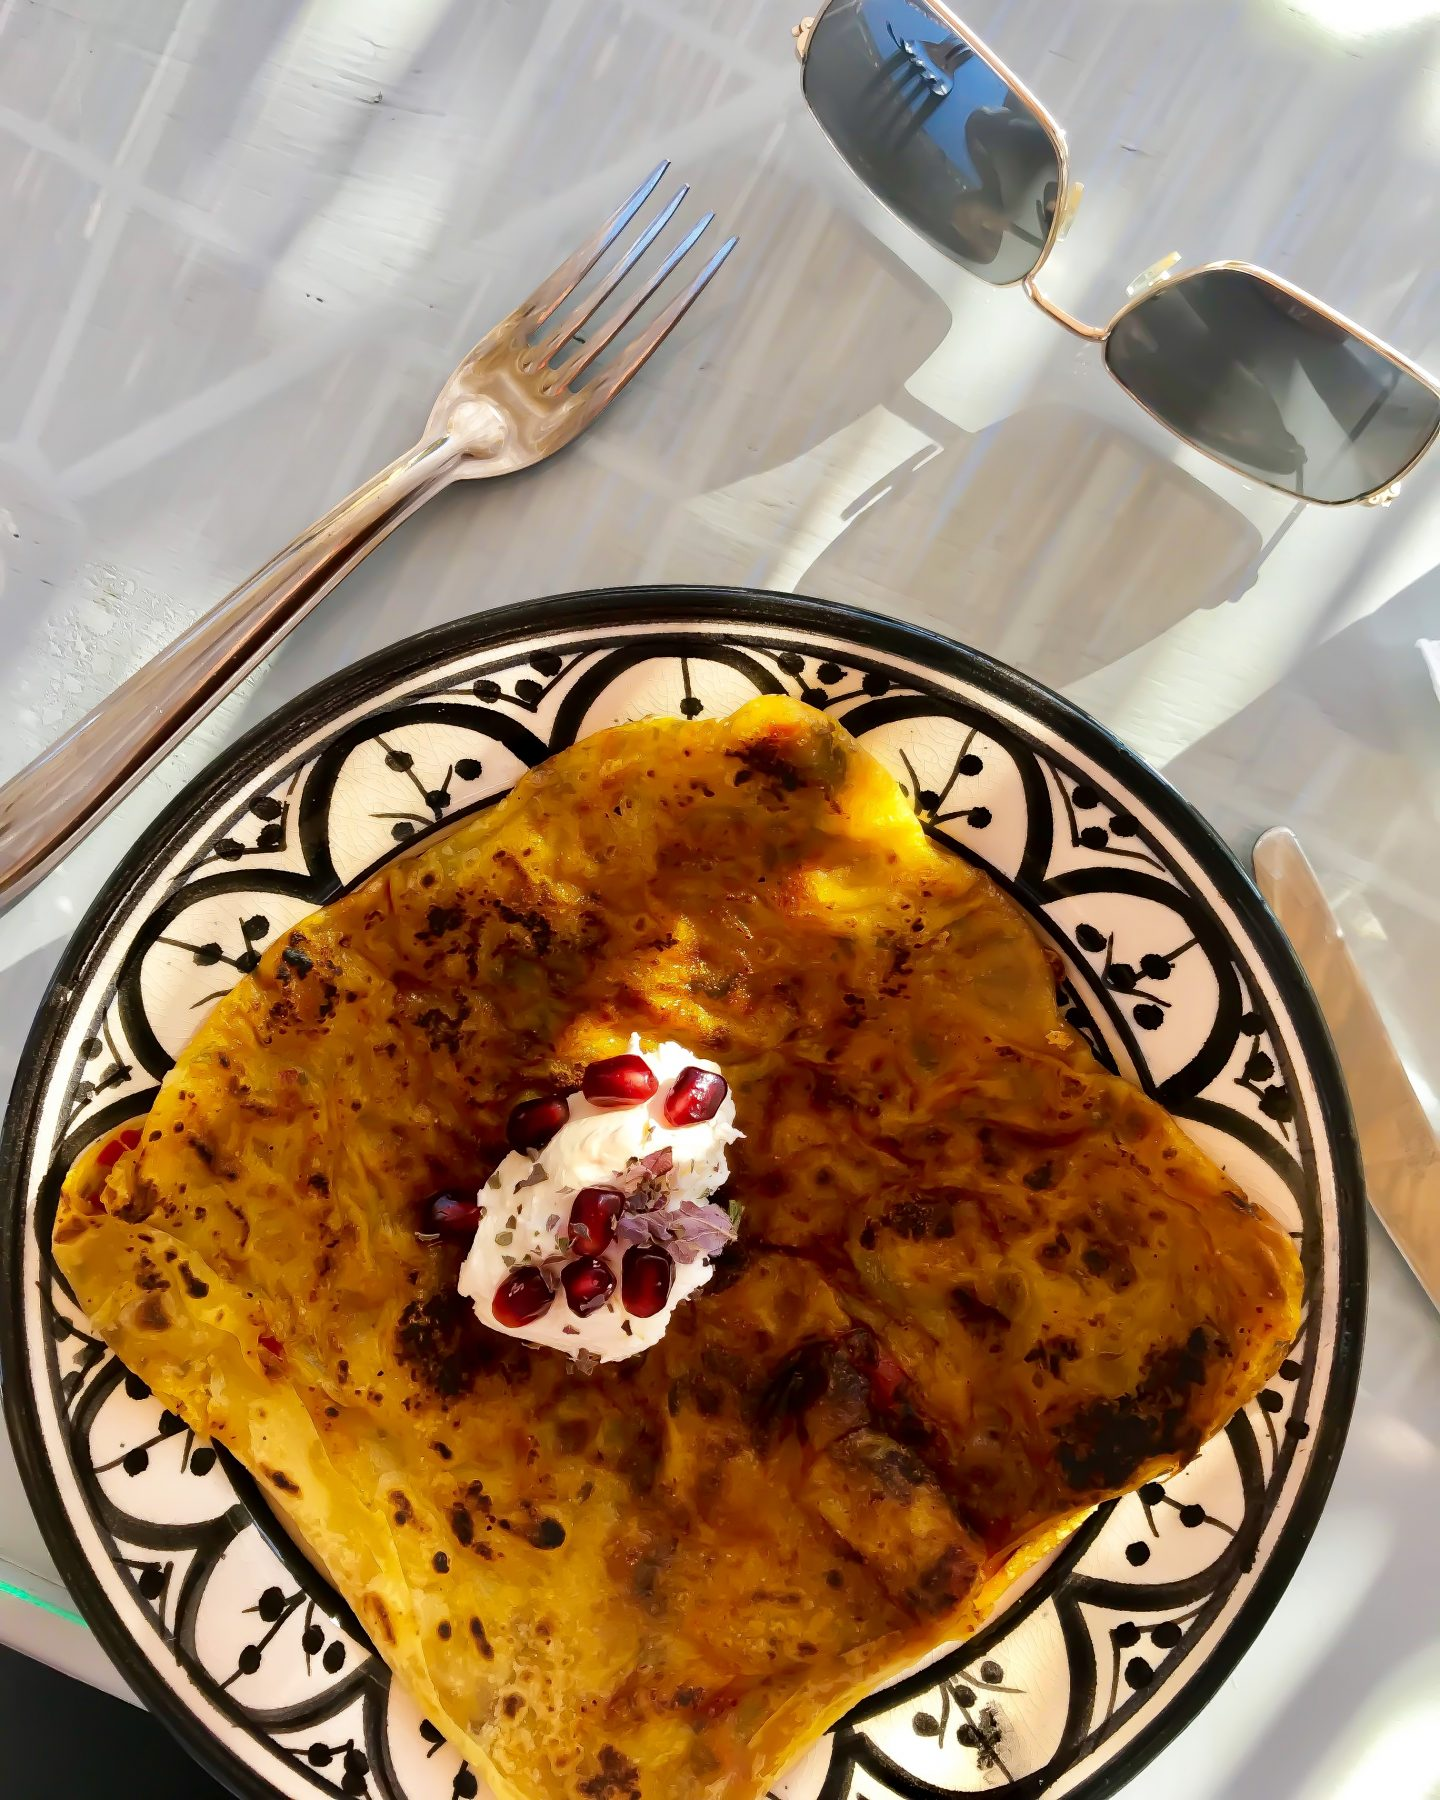 Rghaif Pancake served with cheese